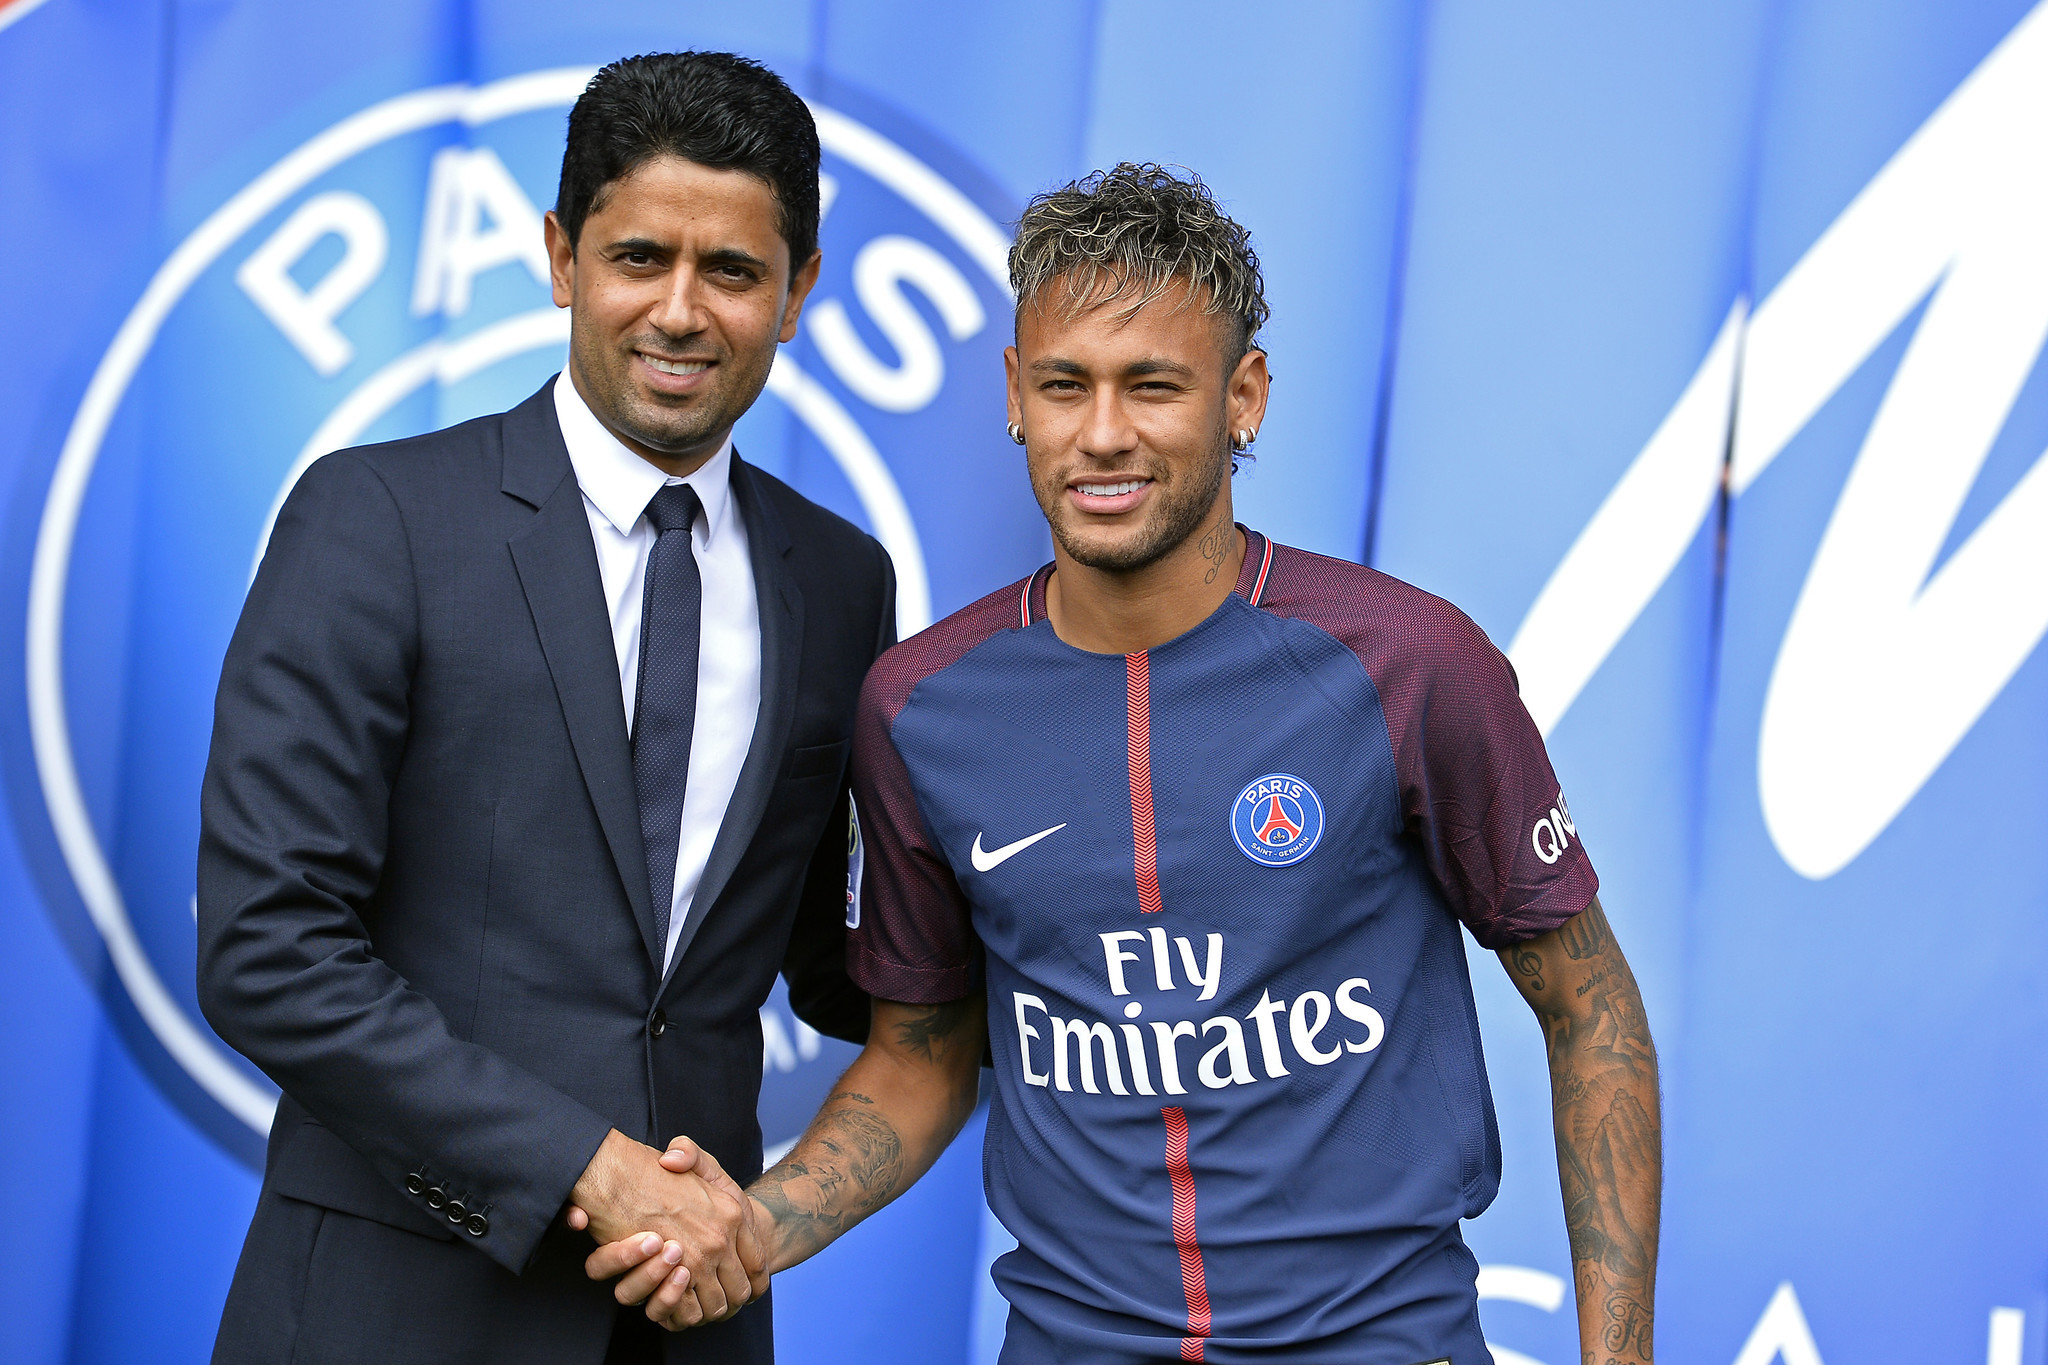 http://www.trbimg.com/img-59acccaa/turbine/ct-hoy-top-5-of-the-week-psg-buys-barca-cries-and-luxembourg-flies-20170903